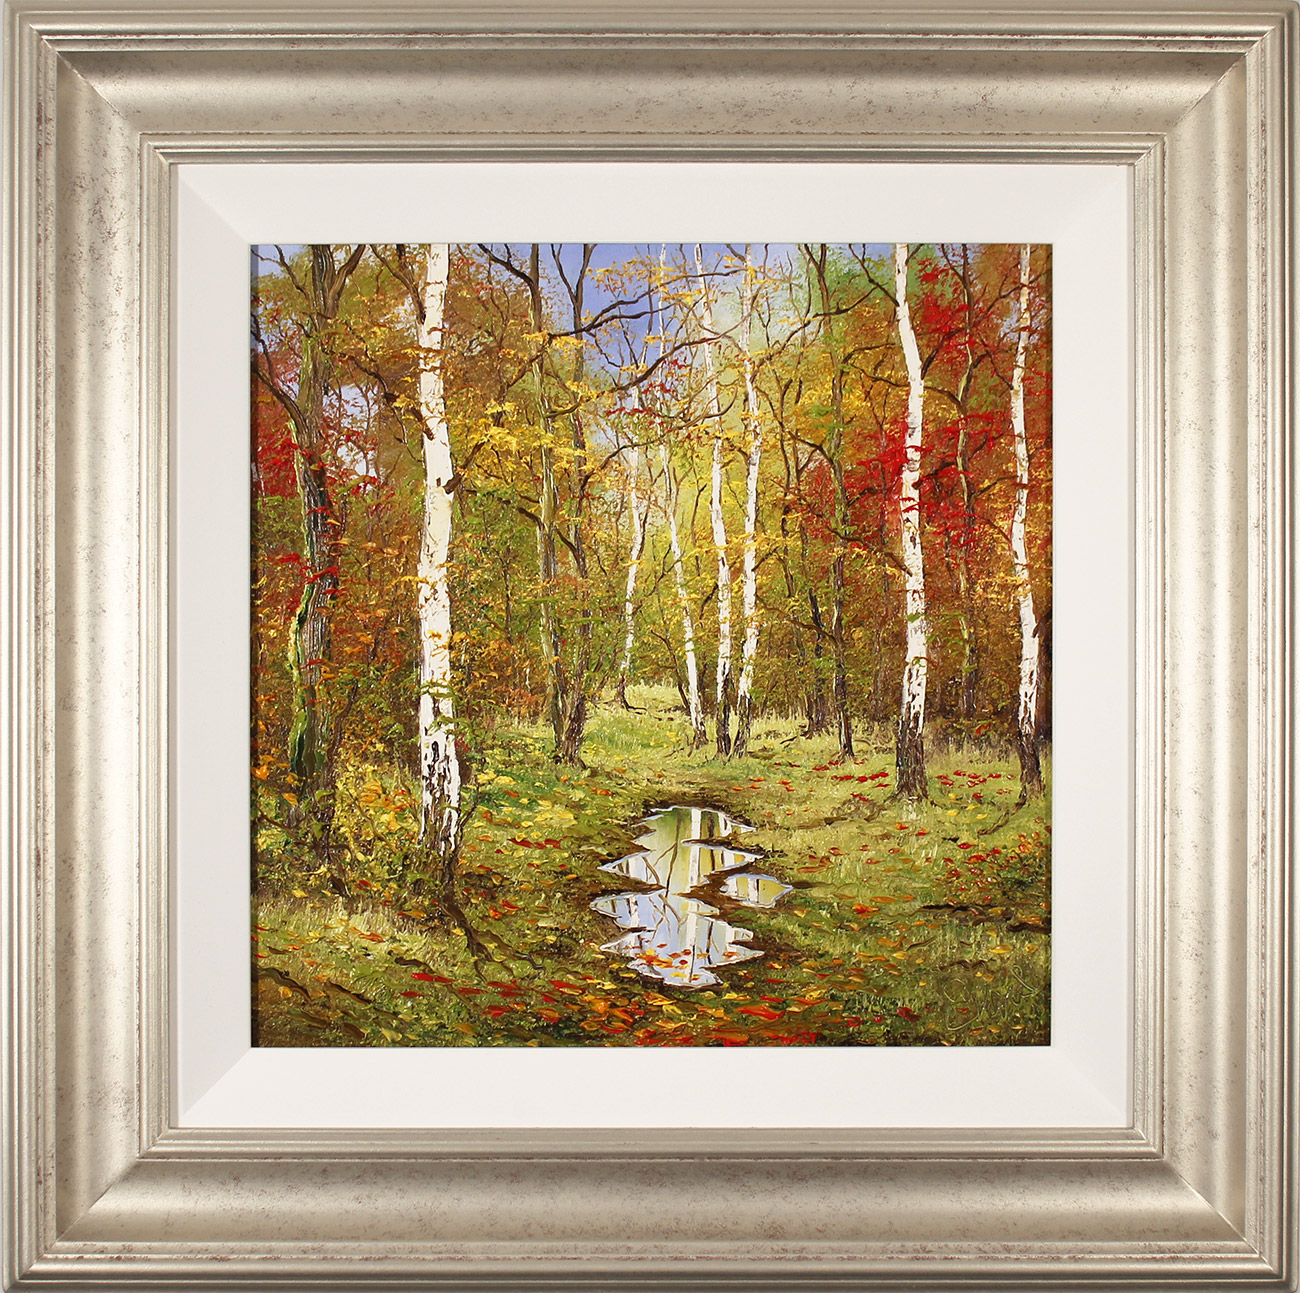 Terry Evans, Original oil painting on canvas, Autumn Birch Wood , click to enlarge